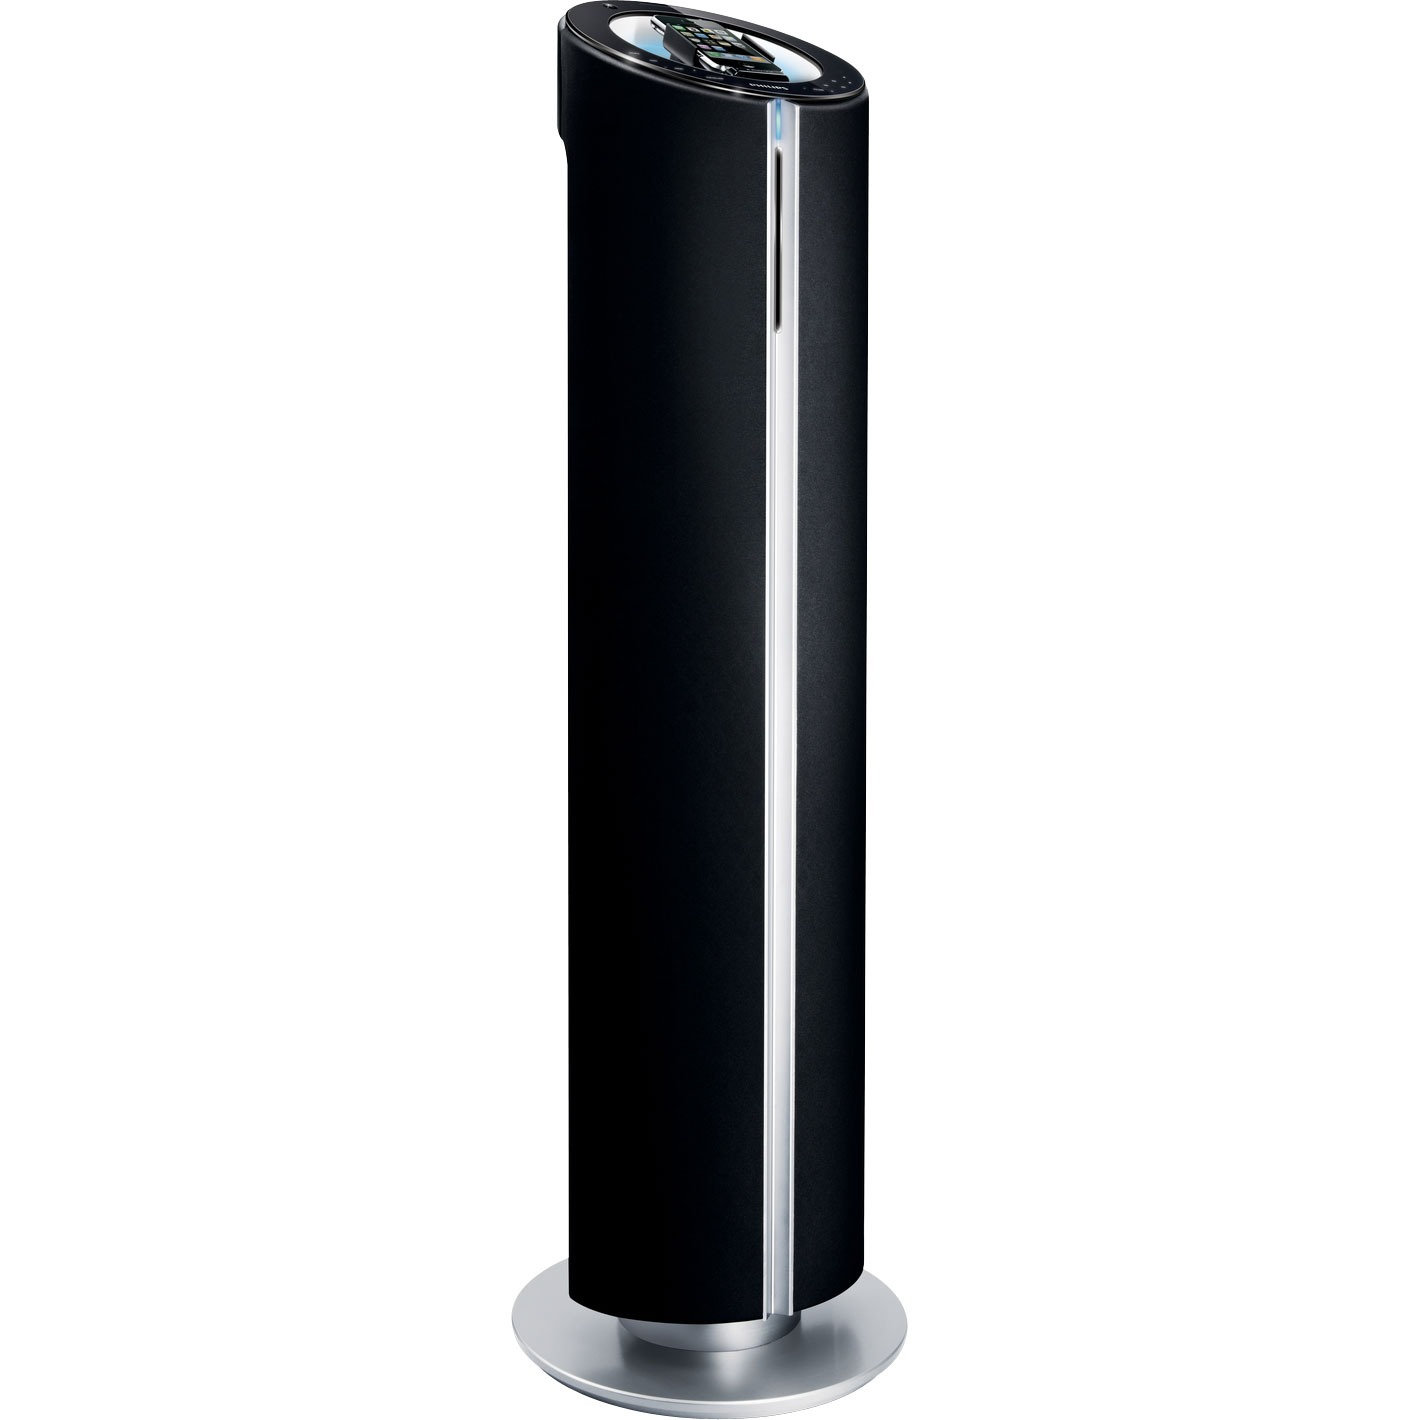 philips dcm580 dock enceinte bluetooth philips sur. Black Bedroom Furniture Sets. Home Design Ideas